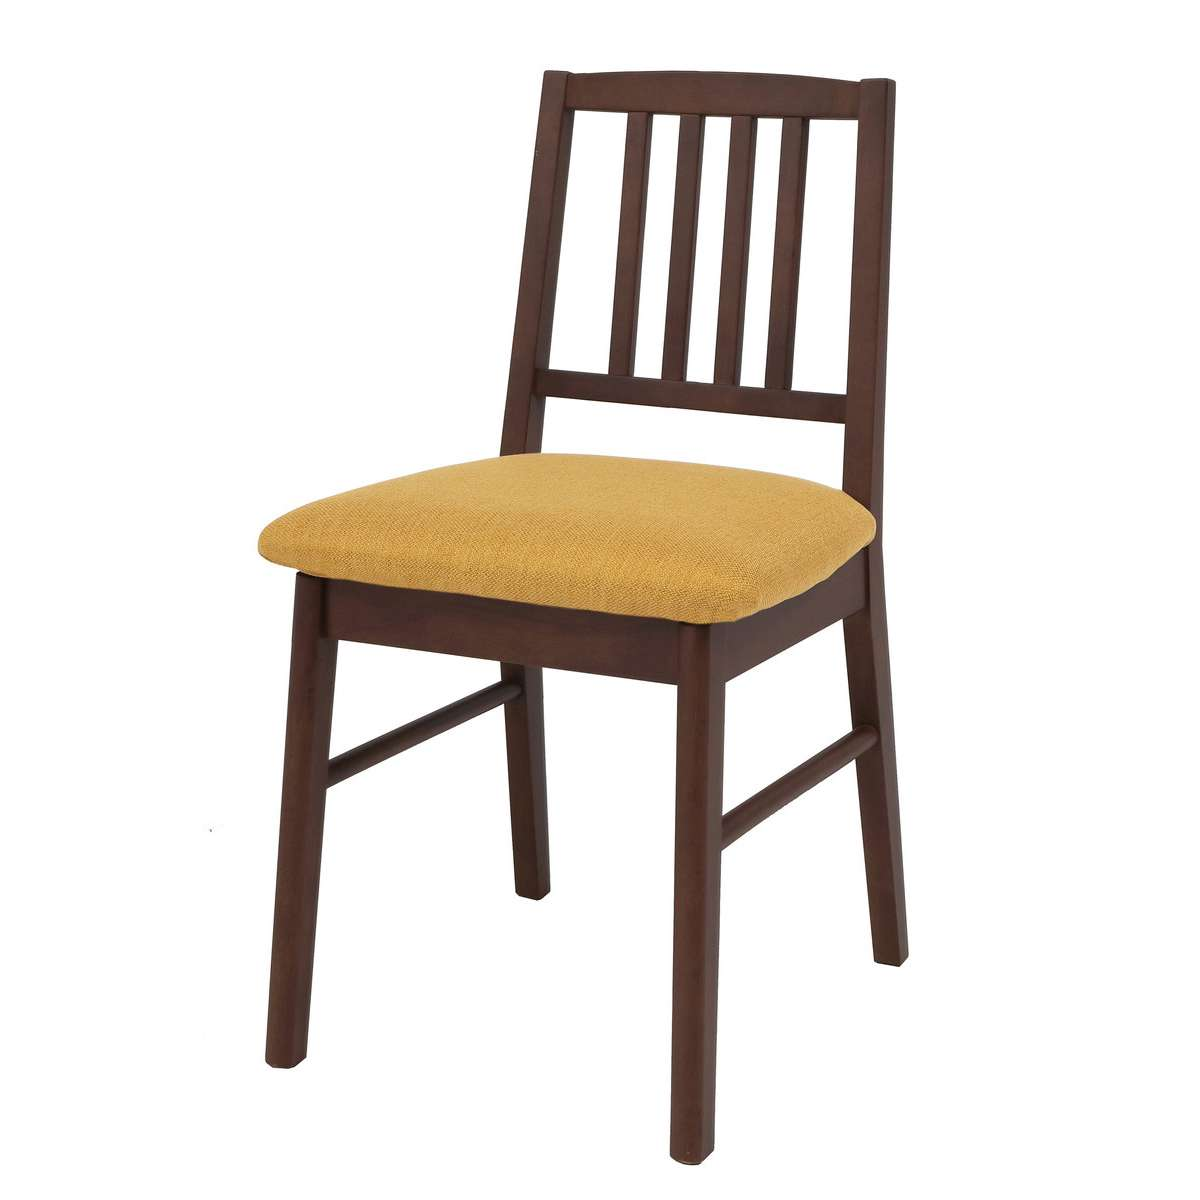 arenot|カフェ(北欧・モダン)BRASILIA Dining Chair yellow(ブラジリア ダイニングチェア イエロー)